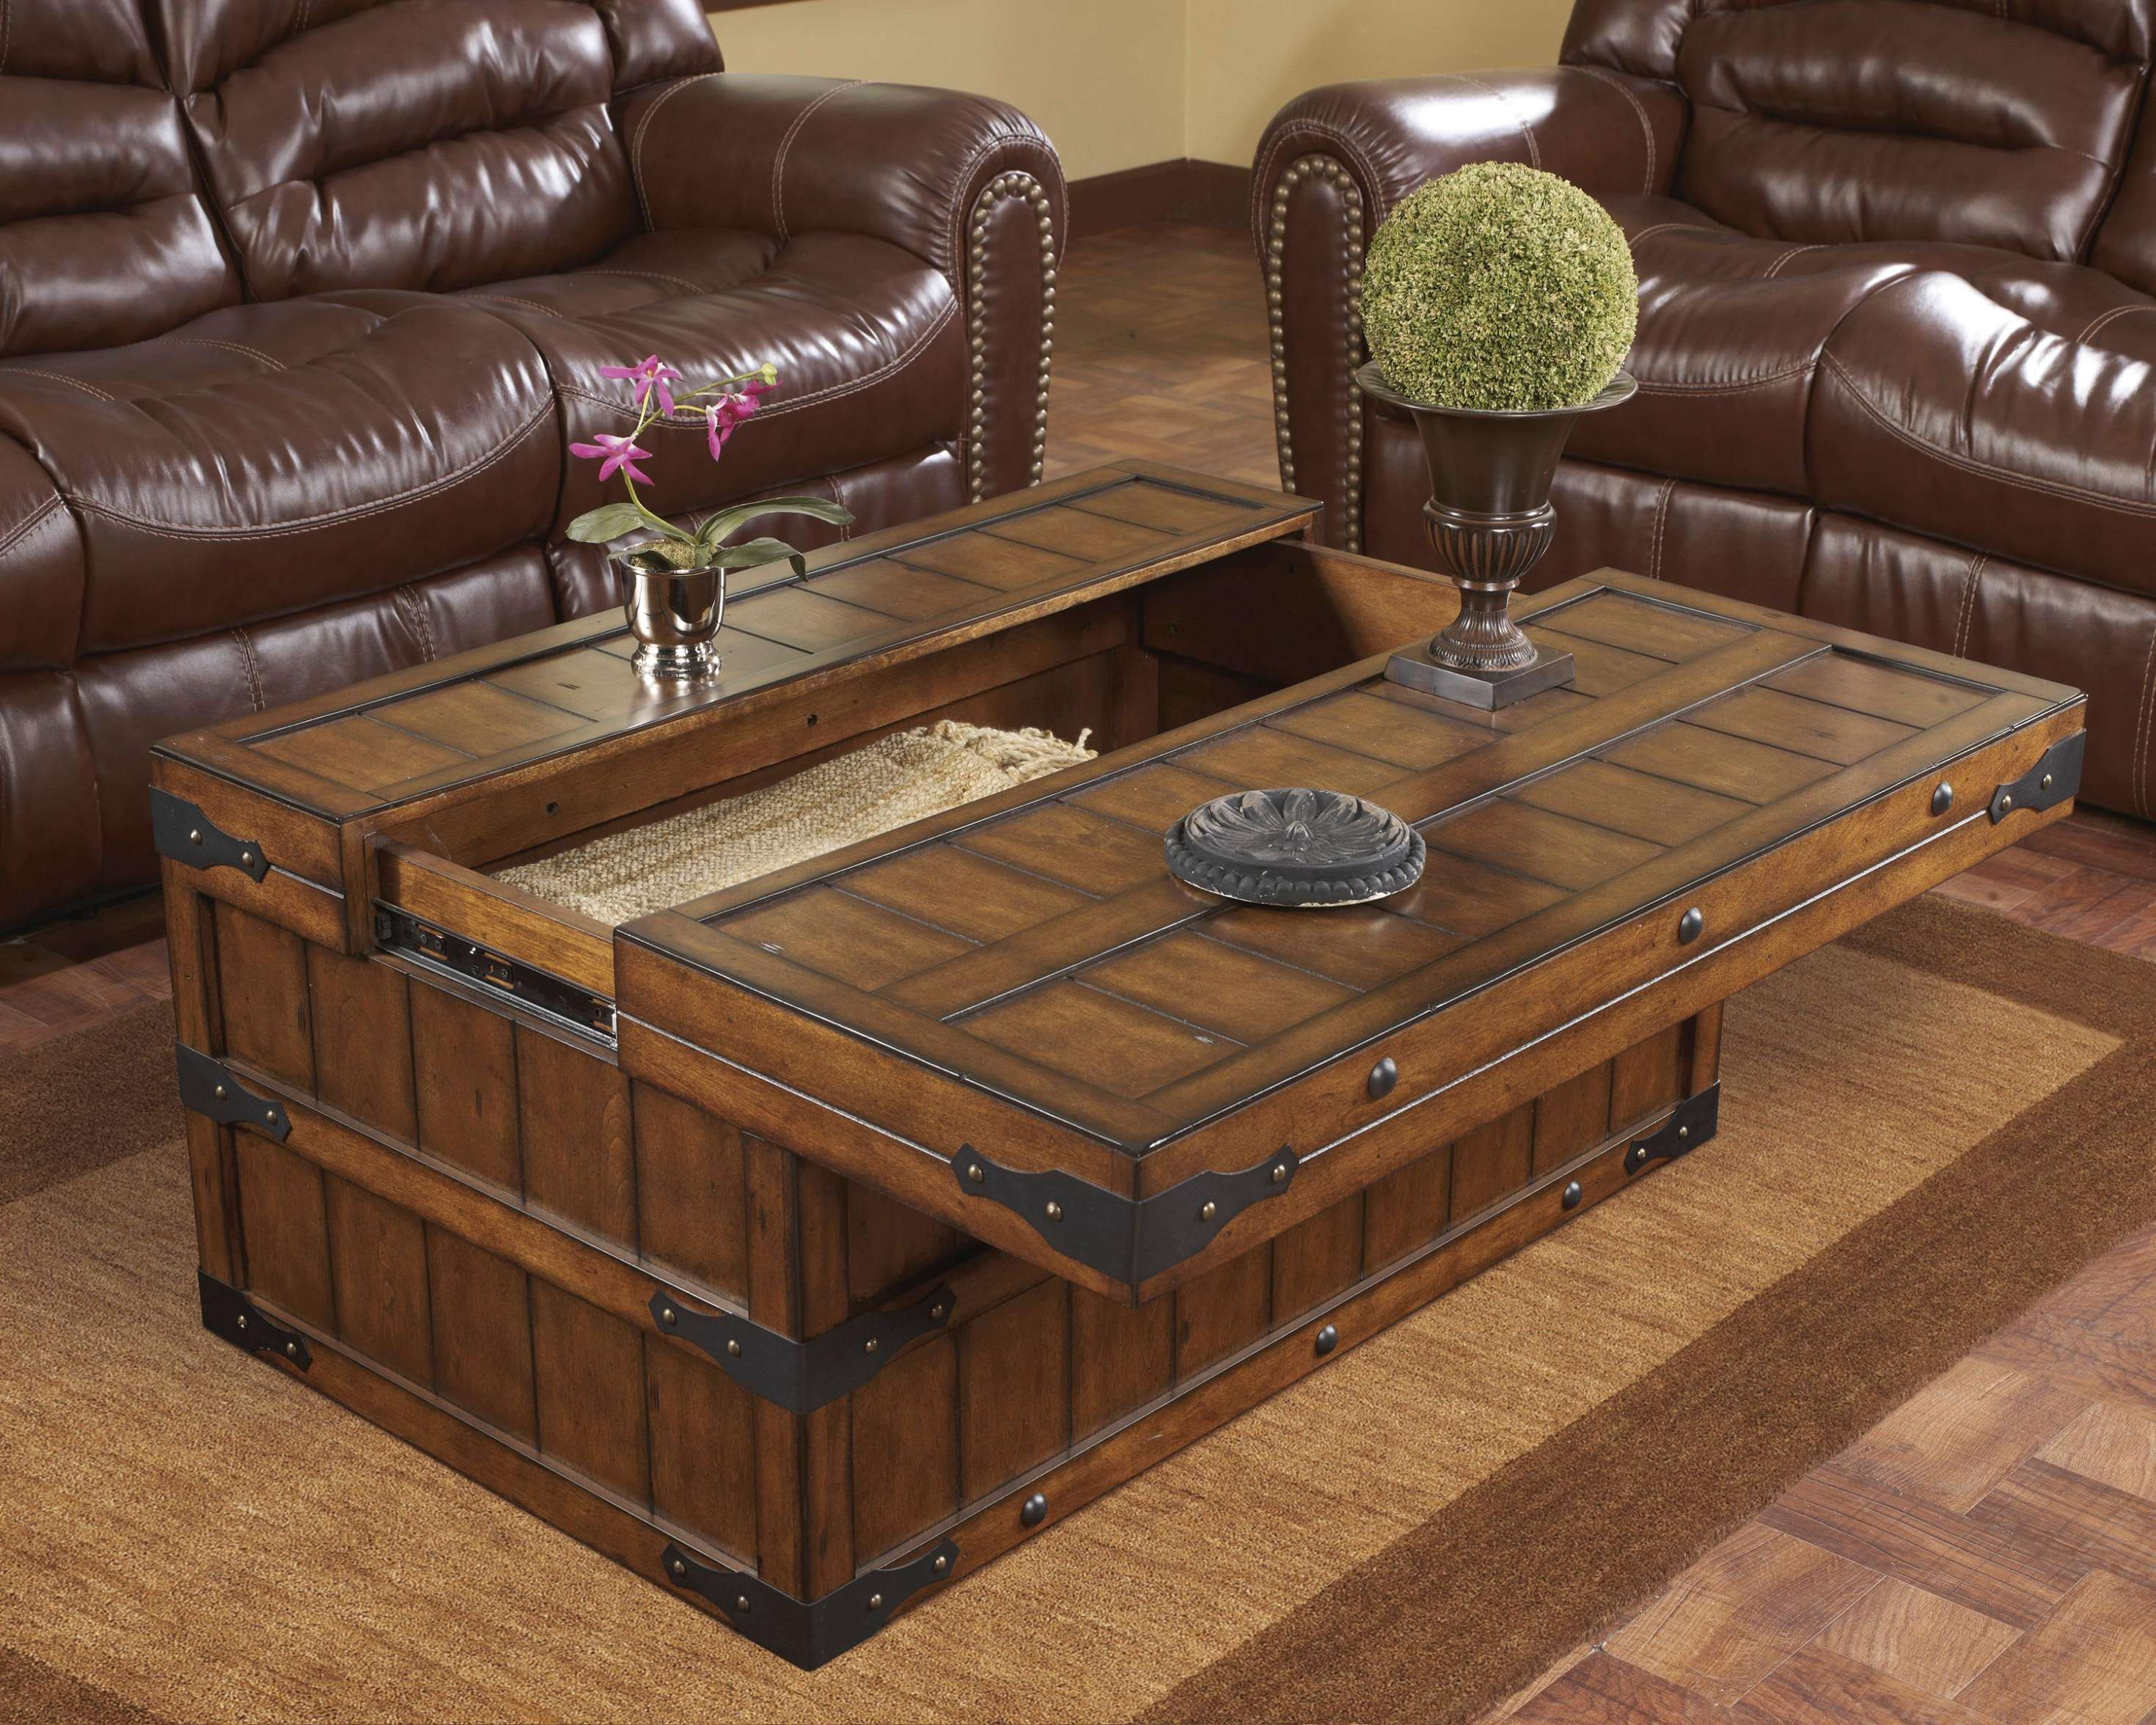 Coffee Tables : Rustic Storage Trunk Coffee Table Trunks And Regarding Well Known Trunks Coffee Tables (View 5 of 20)